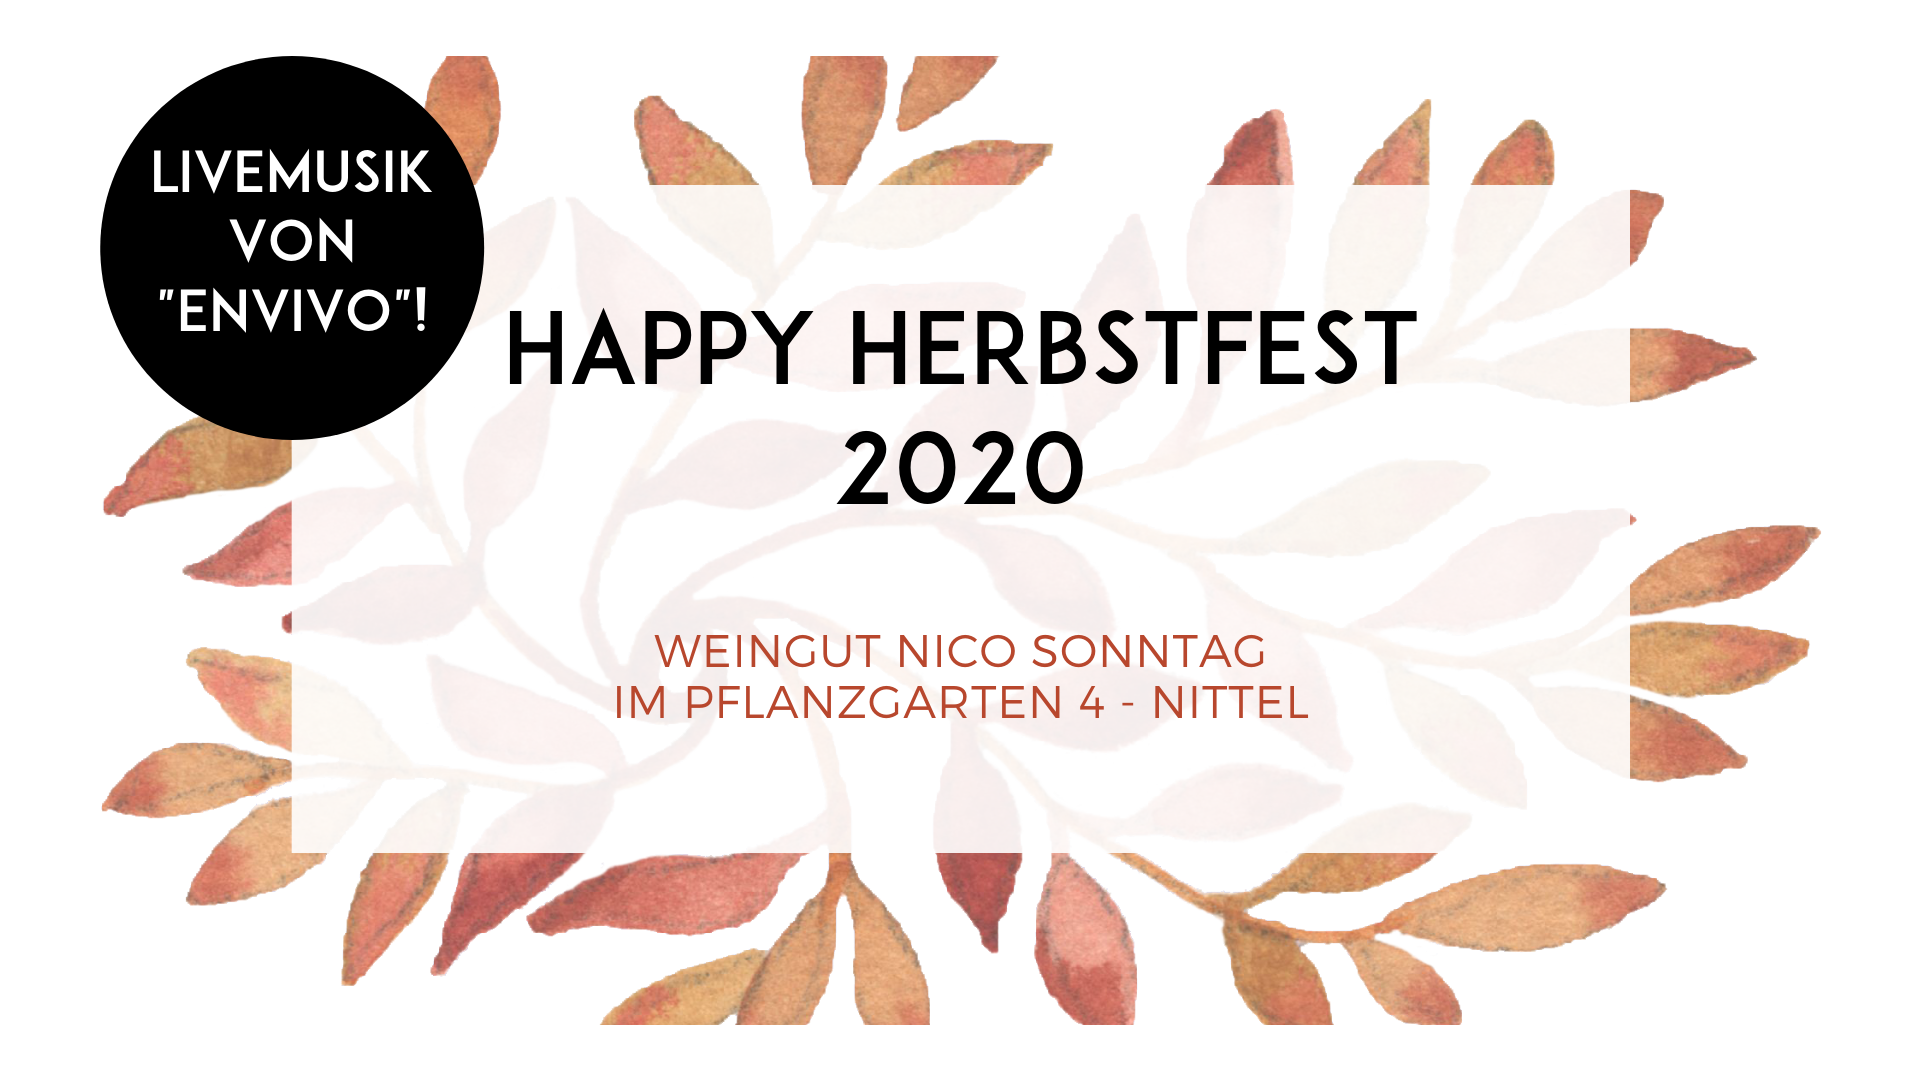 HAPPY HERBSTFEST 2020